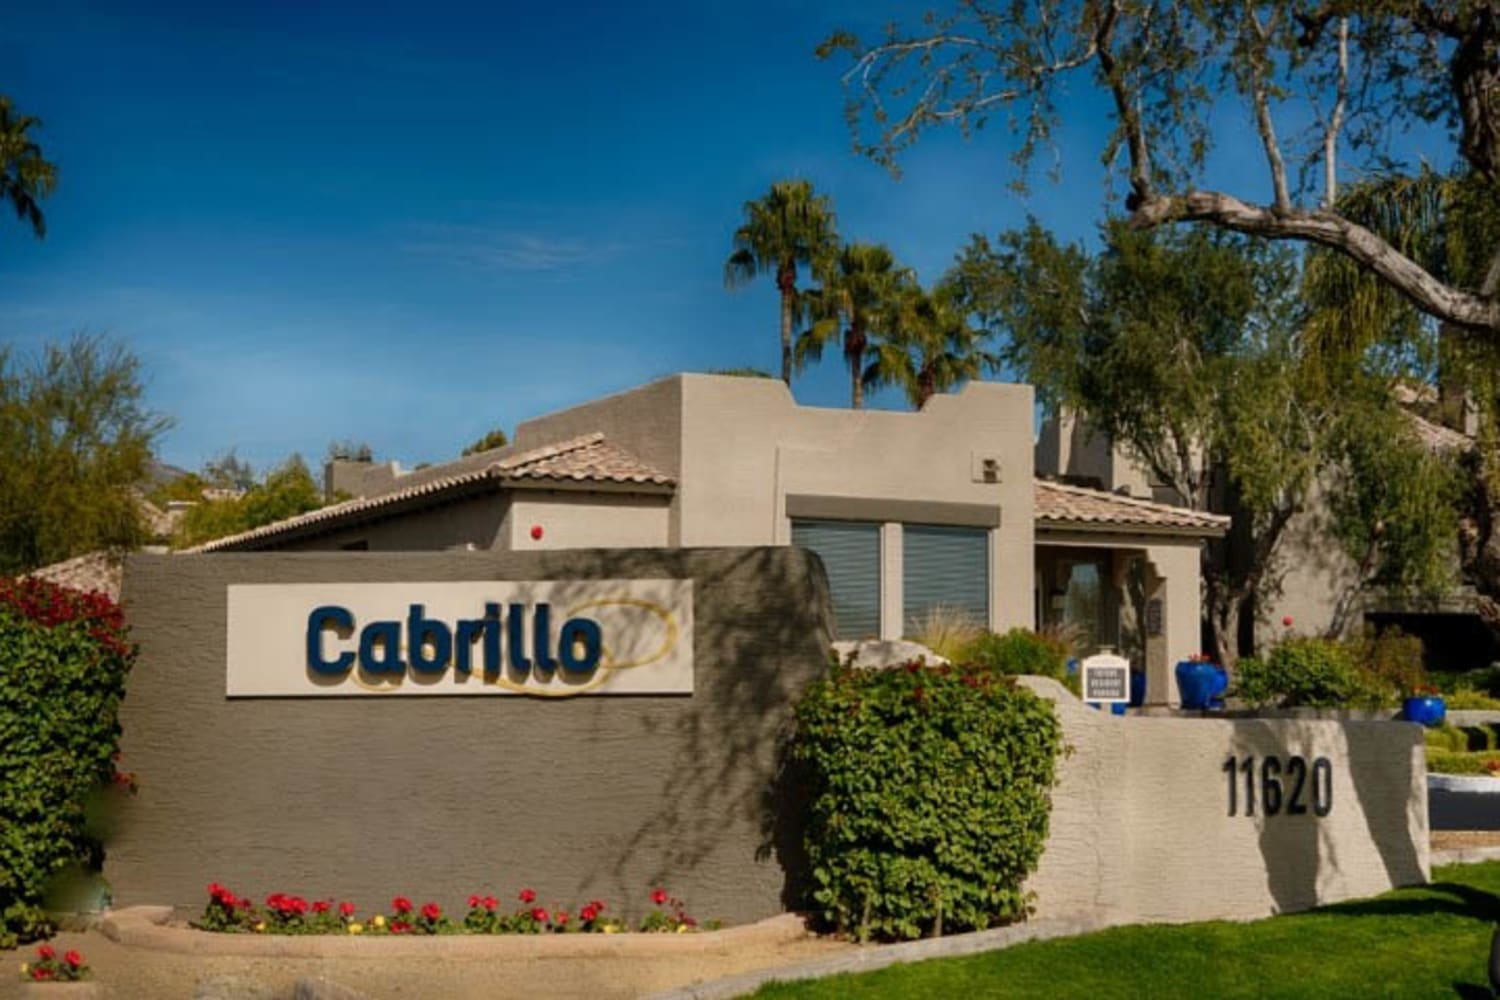 Front entrance sign at Cabrillo Apartments in Scottsdale, Arizona